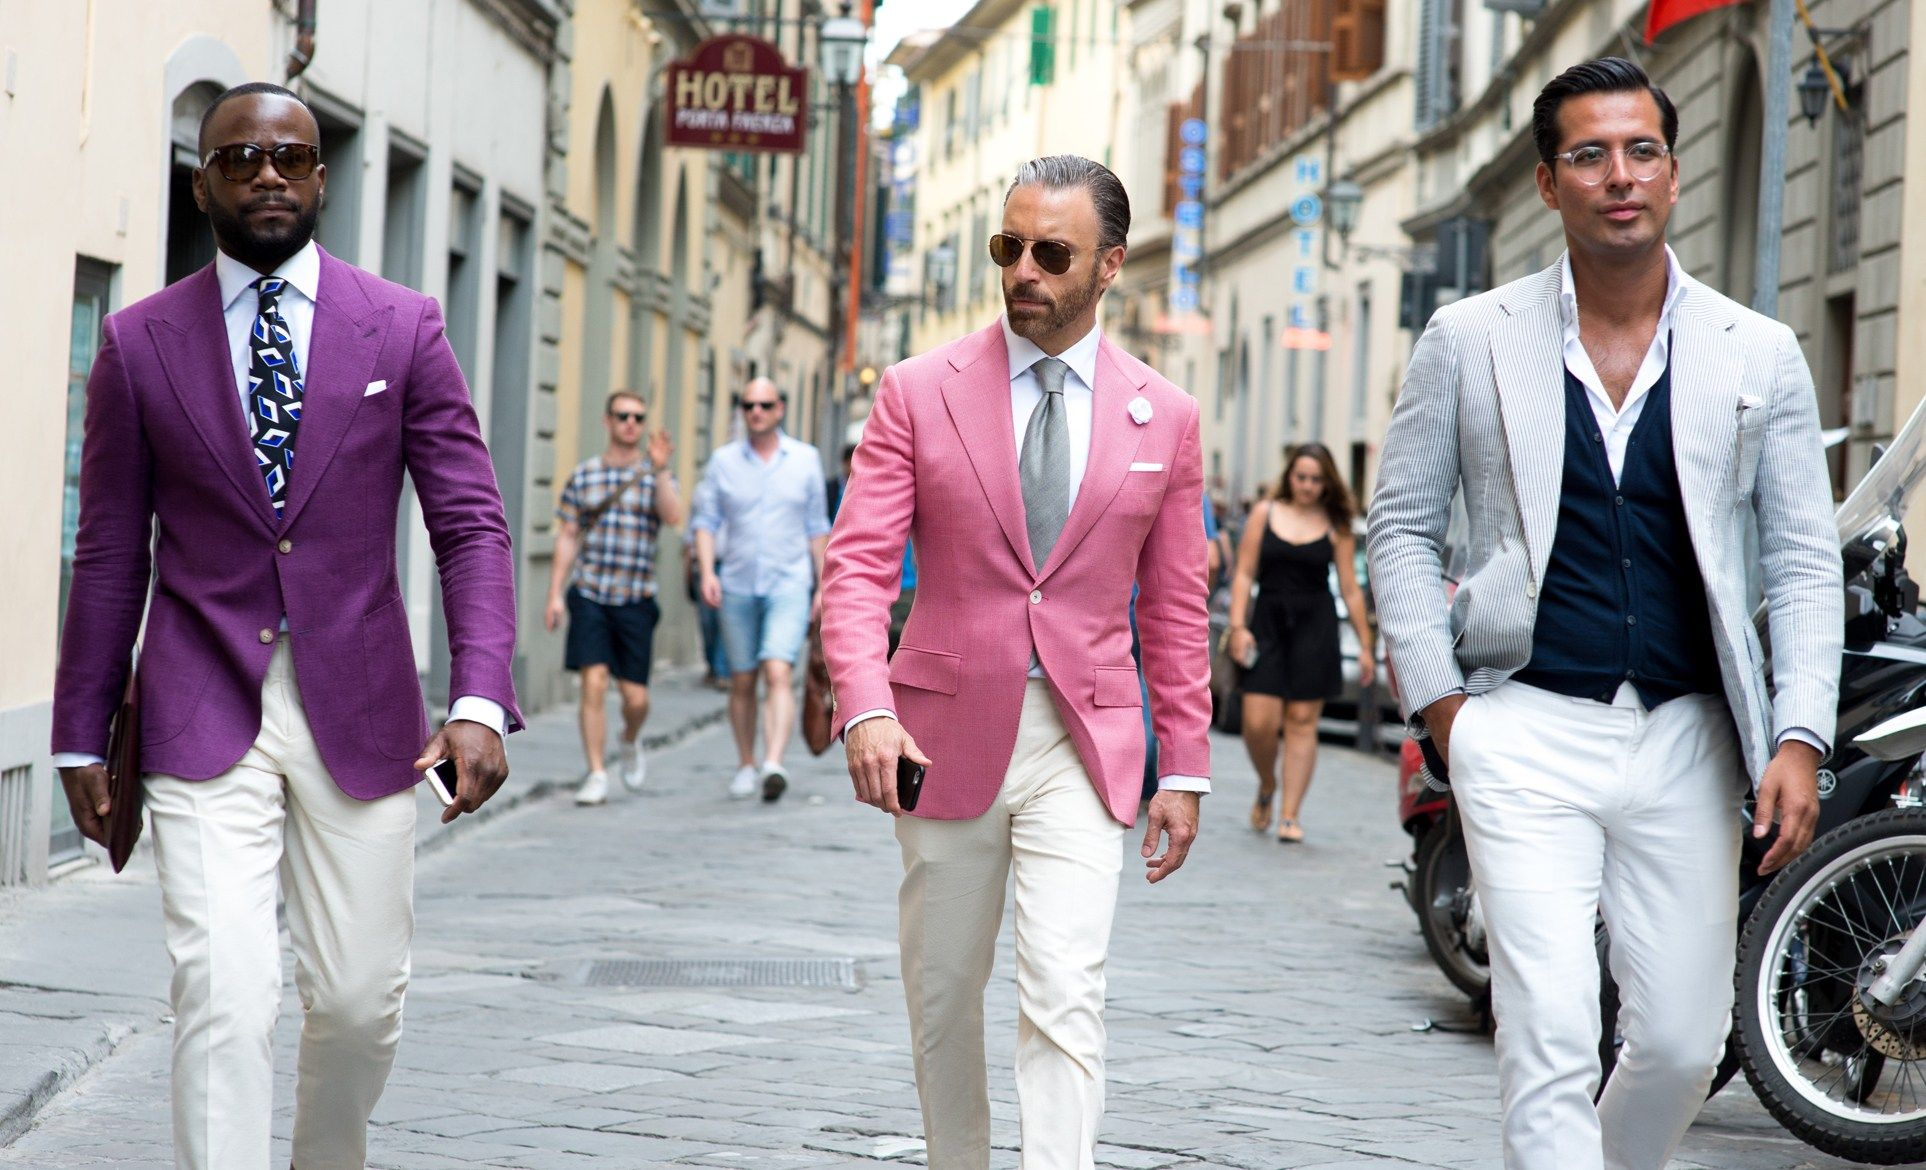 See the strongest looks at Pitti Uomo S/S '16 - GQ.co.uk